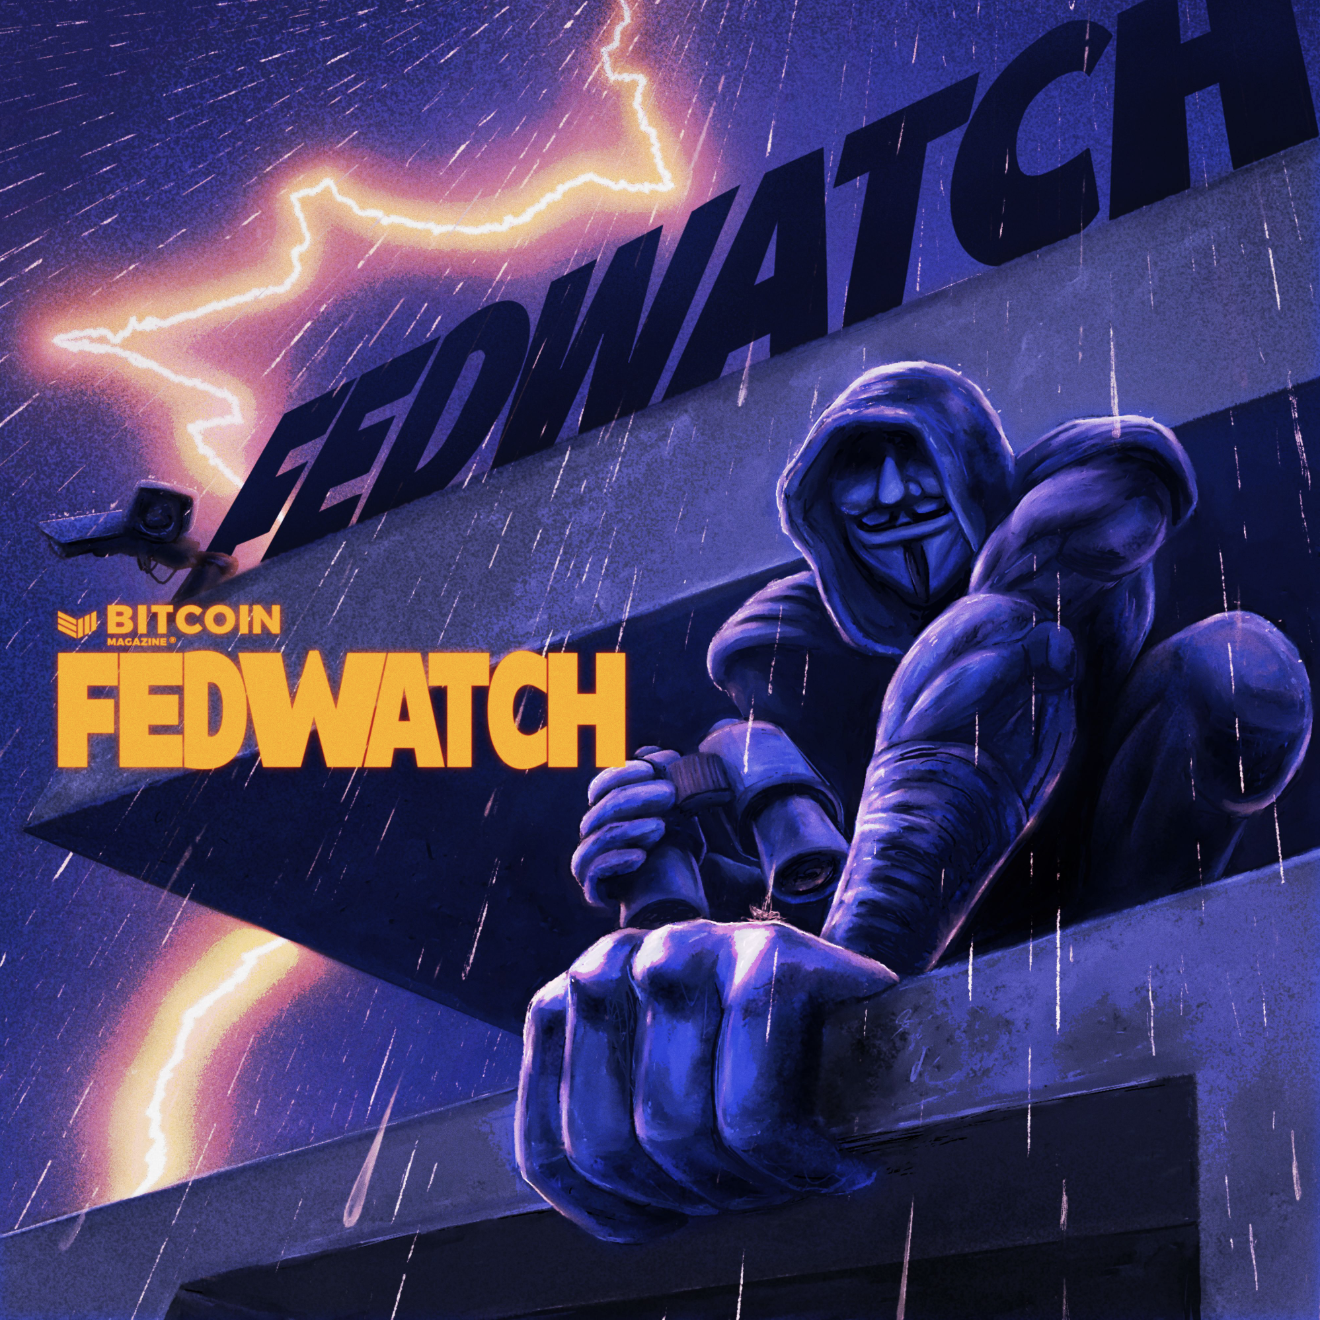 FEDWATCH cover art